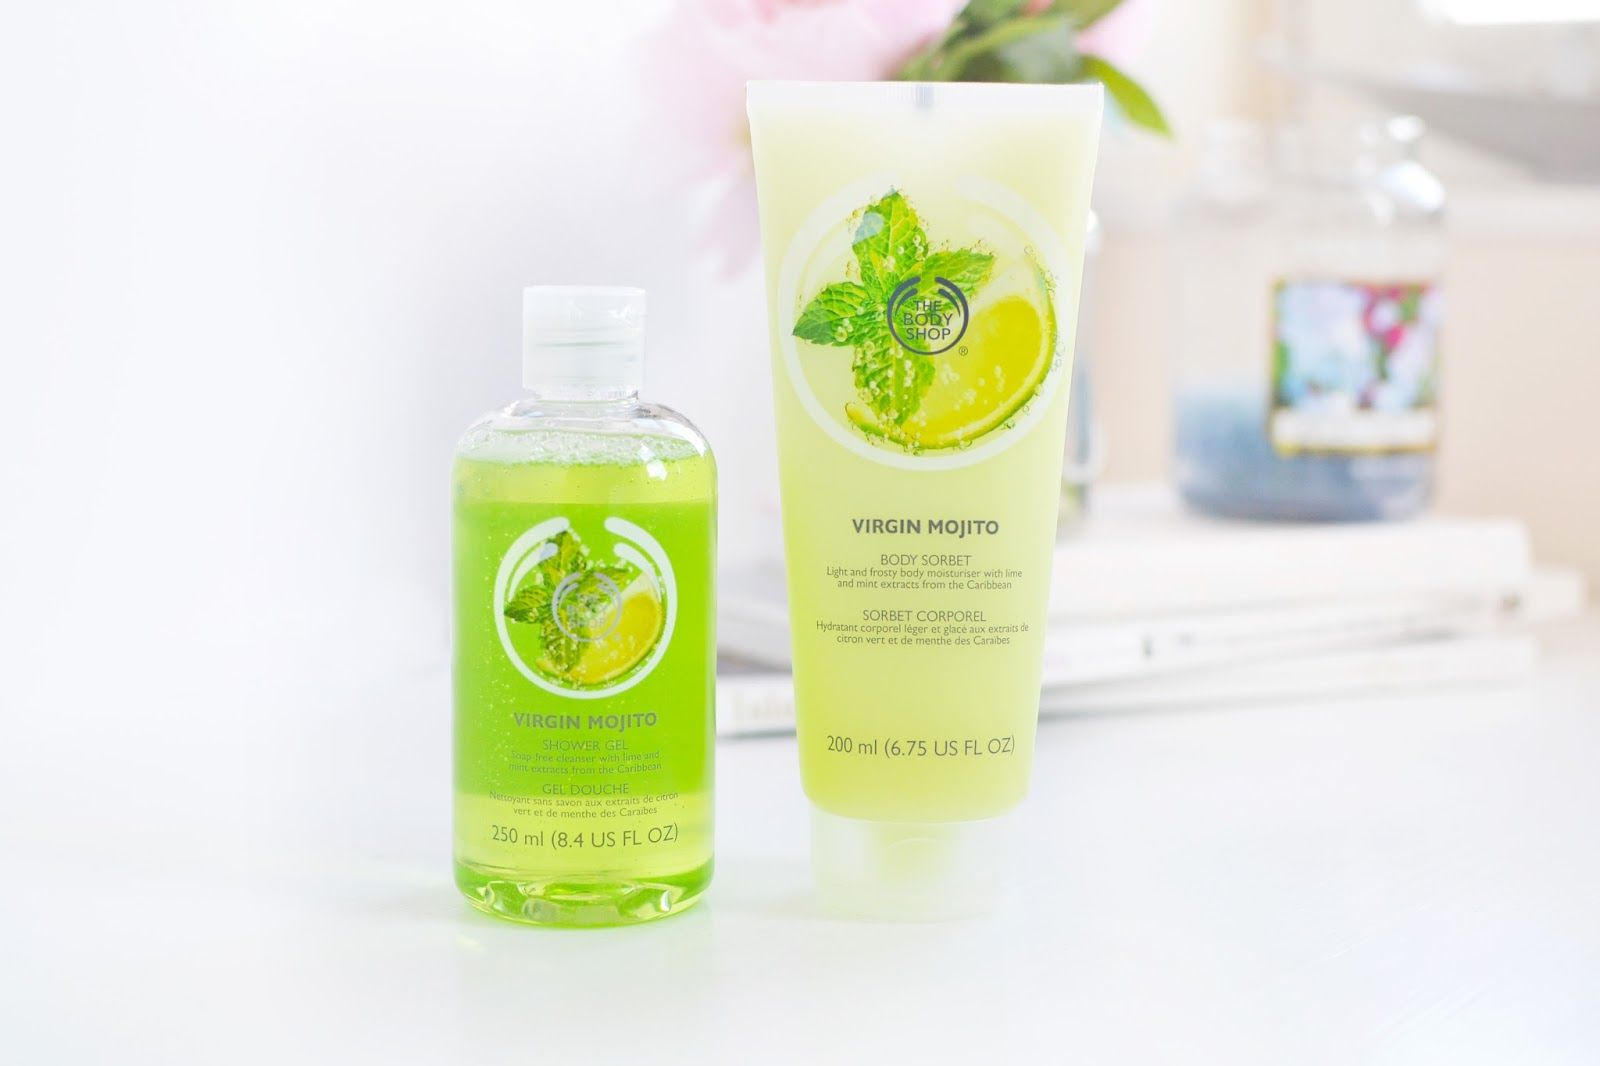 Virgin Mojito From The Body Shop The Body Shop Virgin Mojito